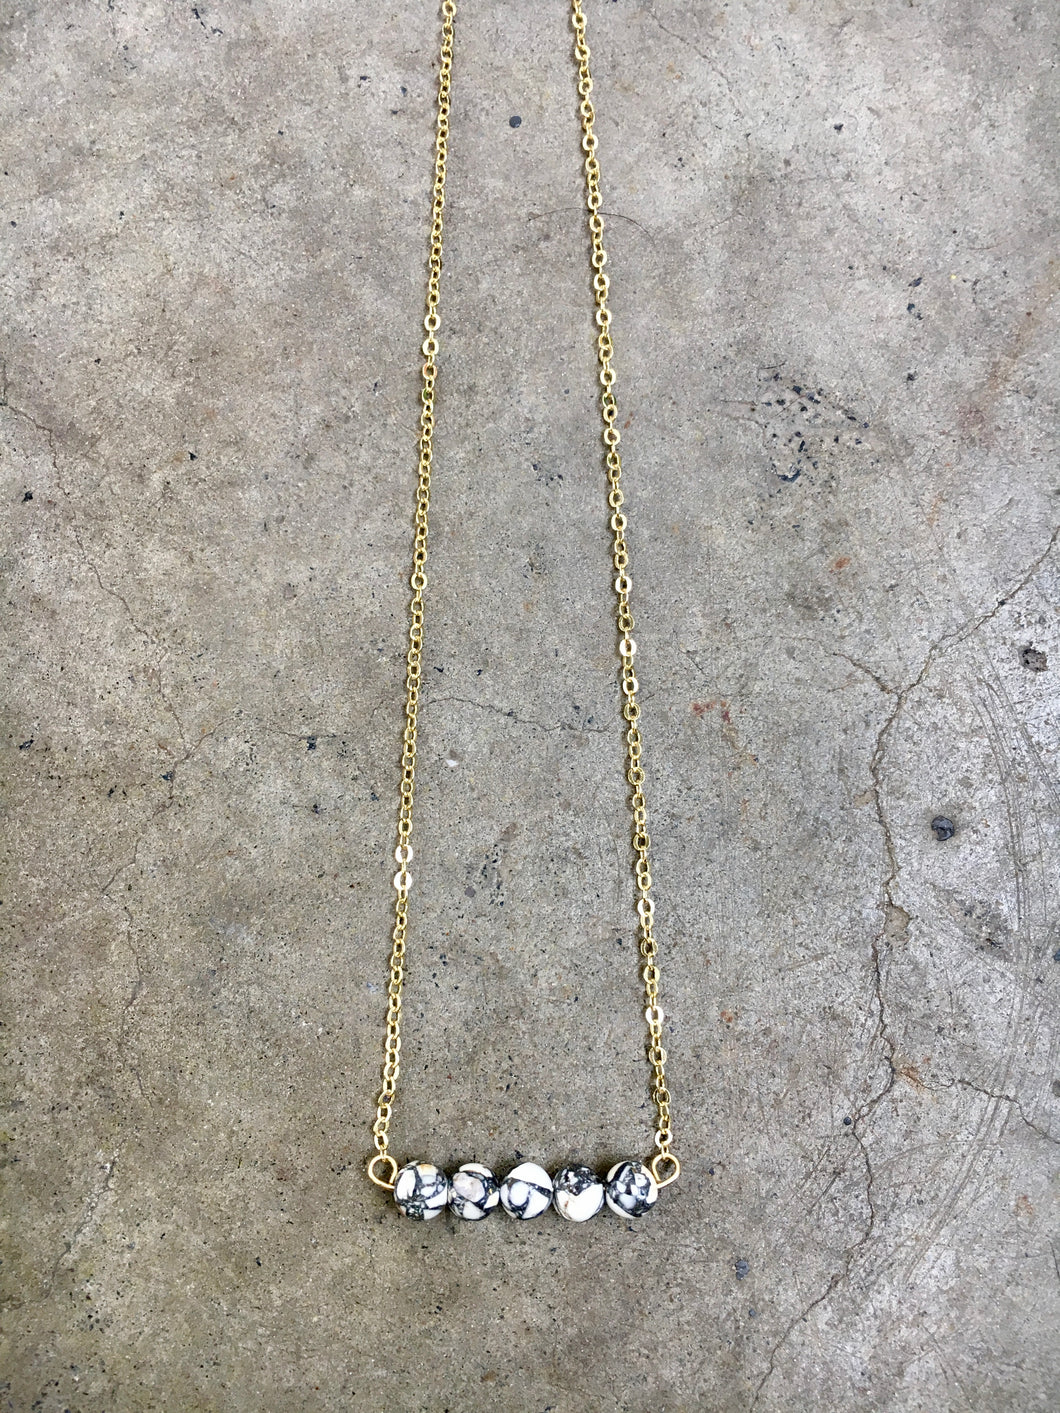 Dalmation Jasper Bar Necklace